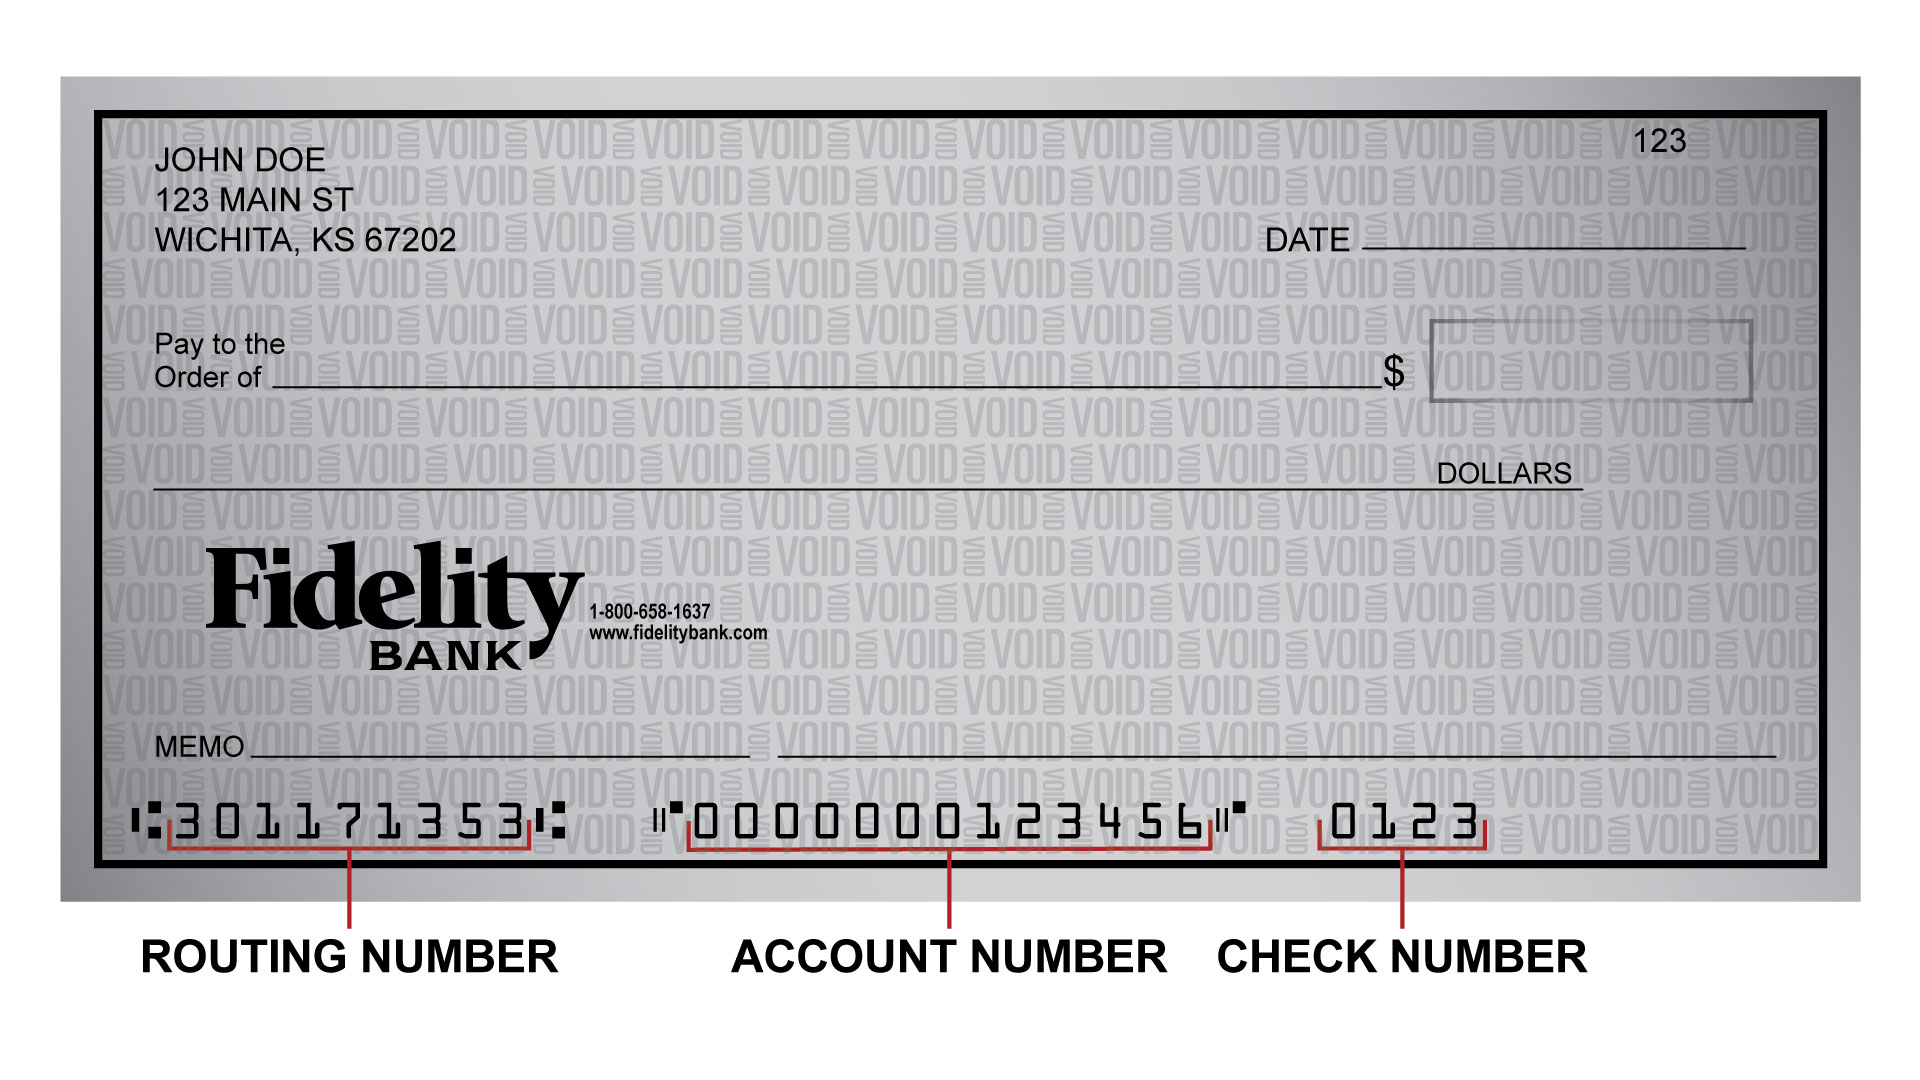 Fidelity Bank Routing Number